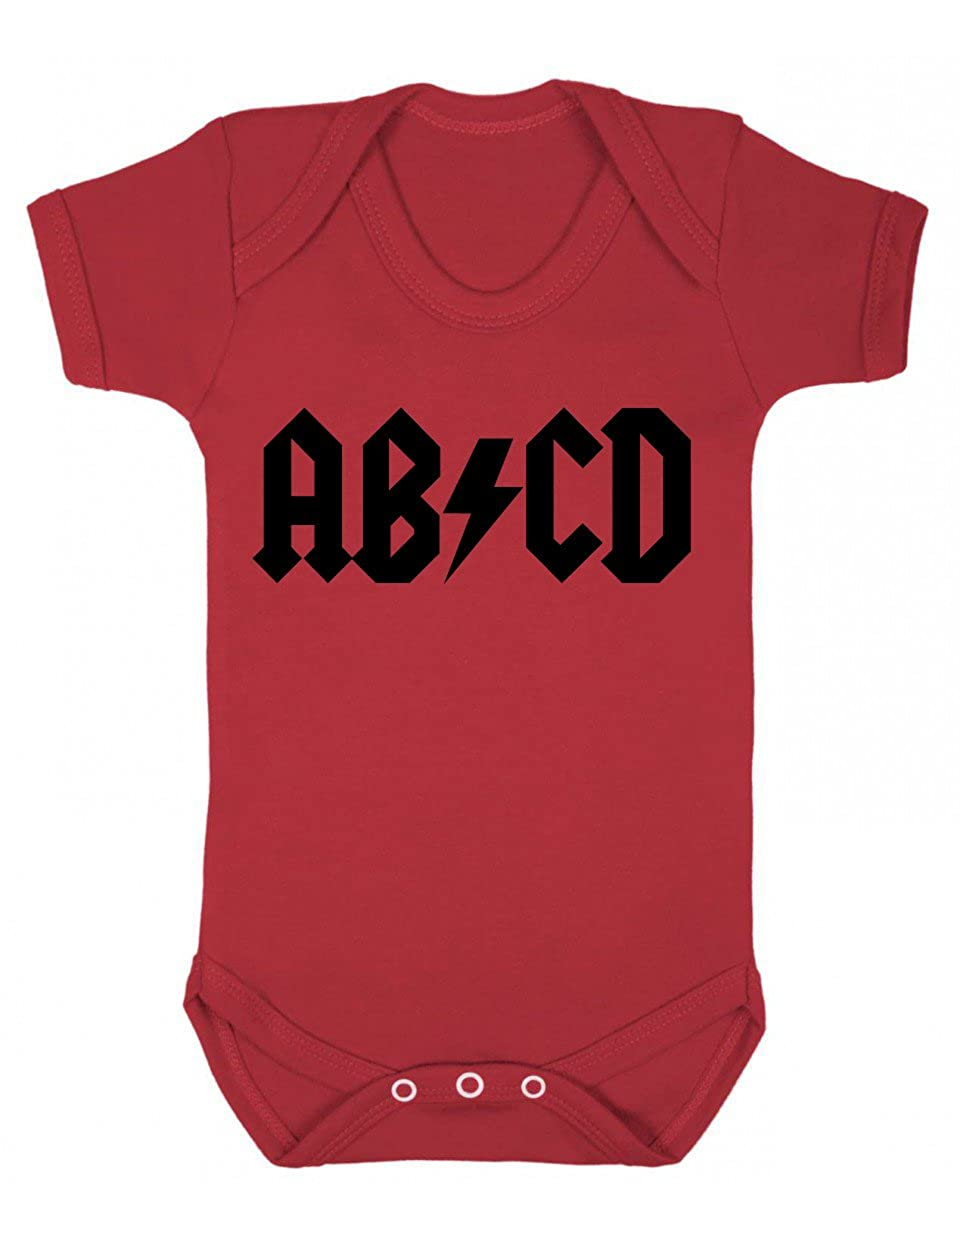 ABCD - ACDC Parody Fun Baby Playsuit BABYBS011